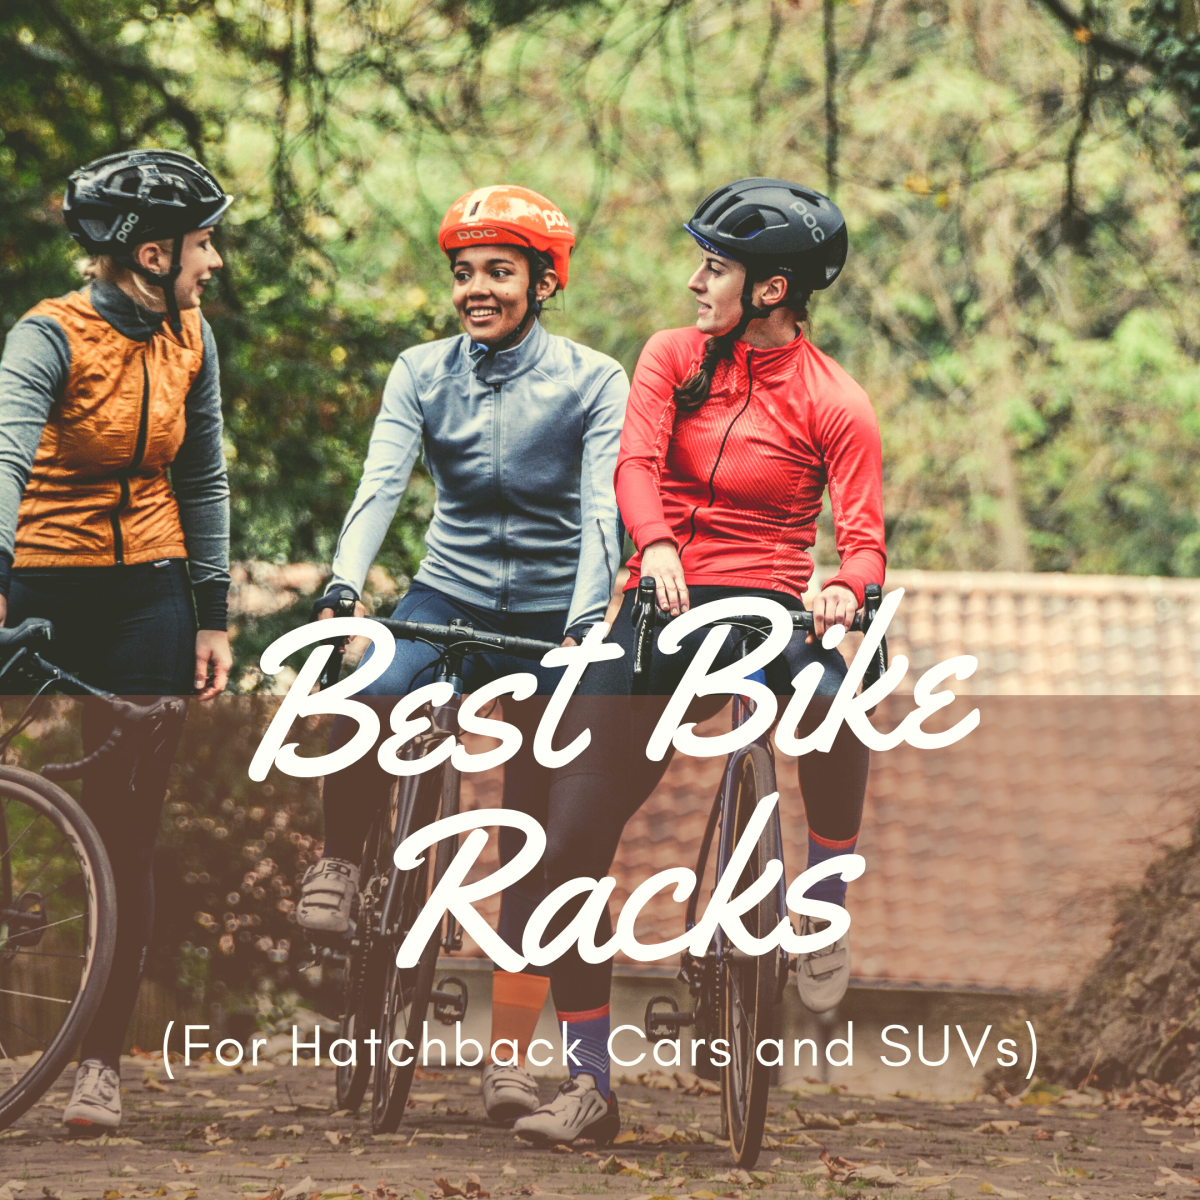 What's the best bike rack for your situation?